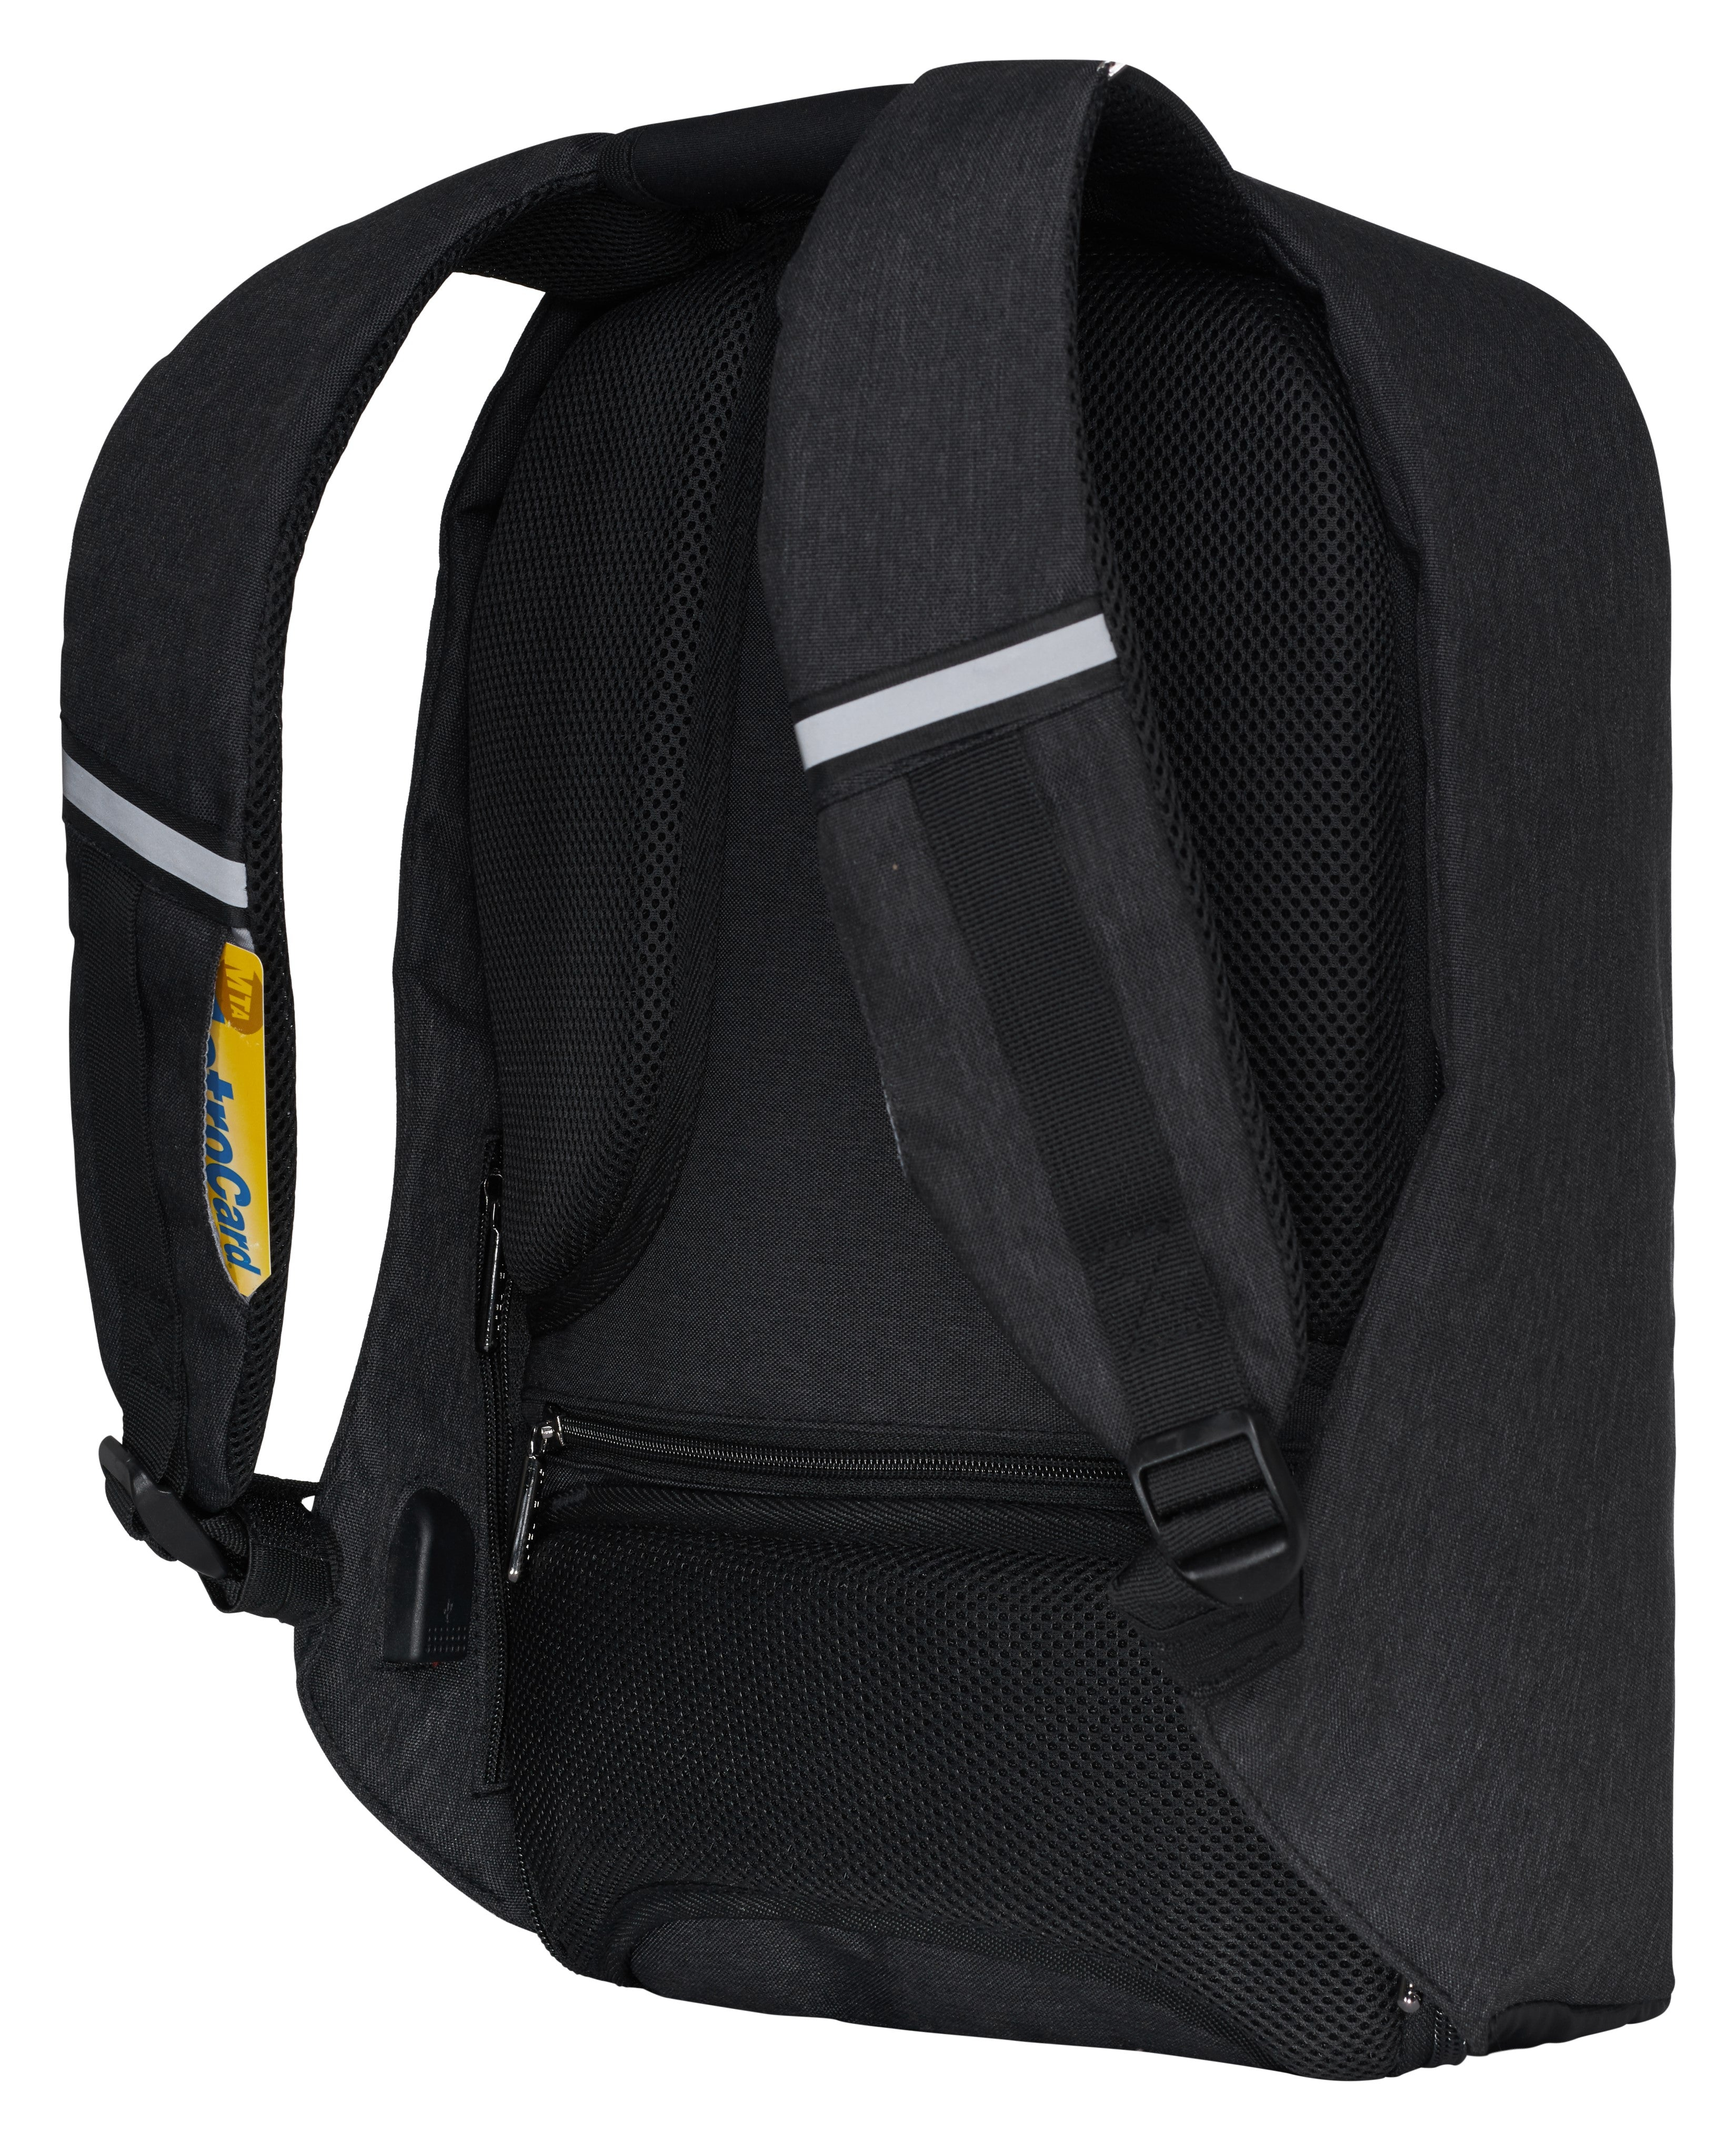 The game theory back side metrocard Black. Secure gamging console bookbag